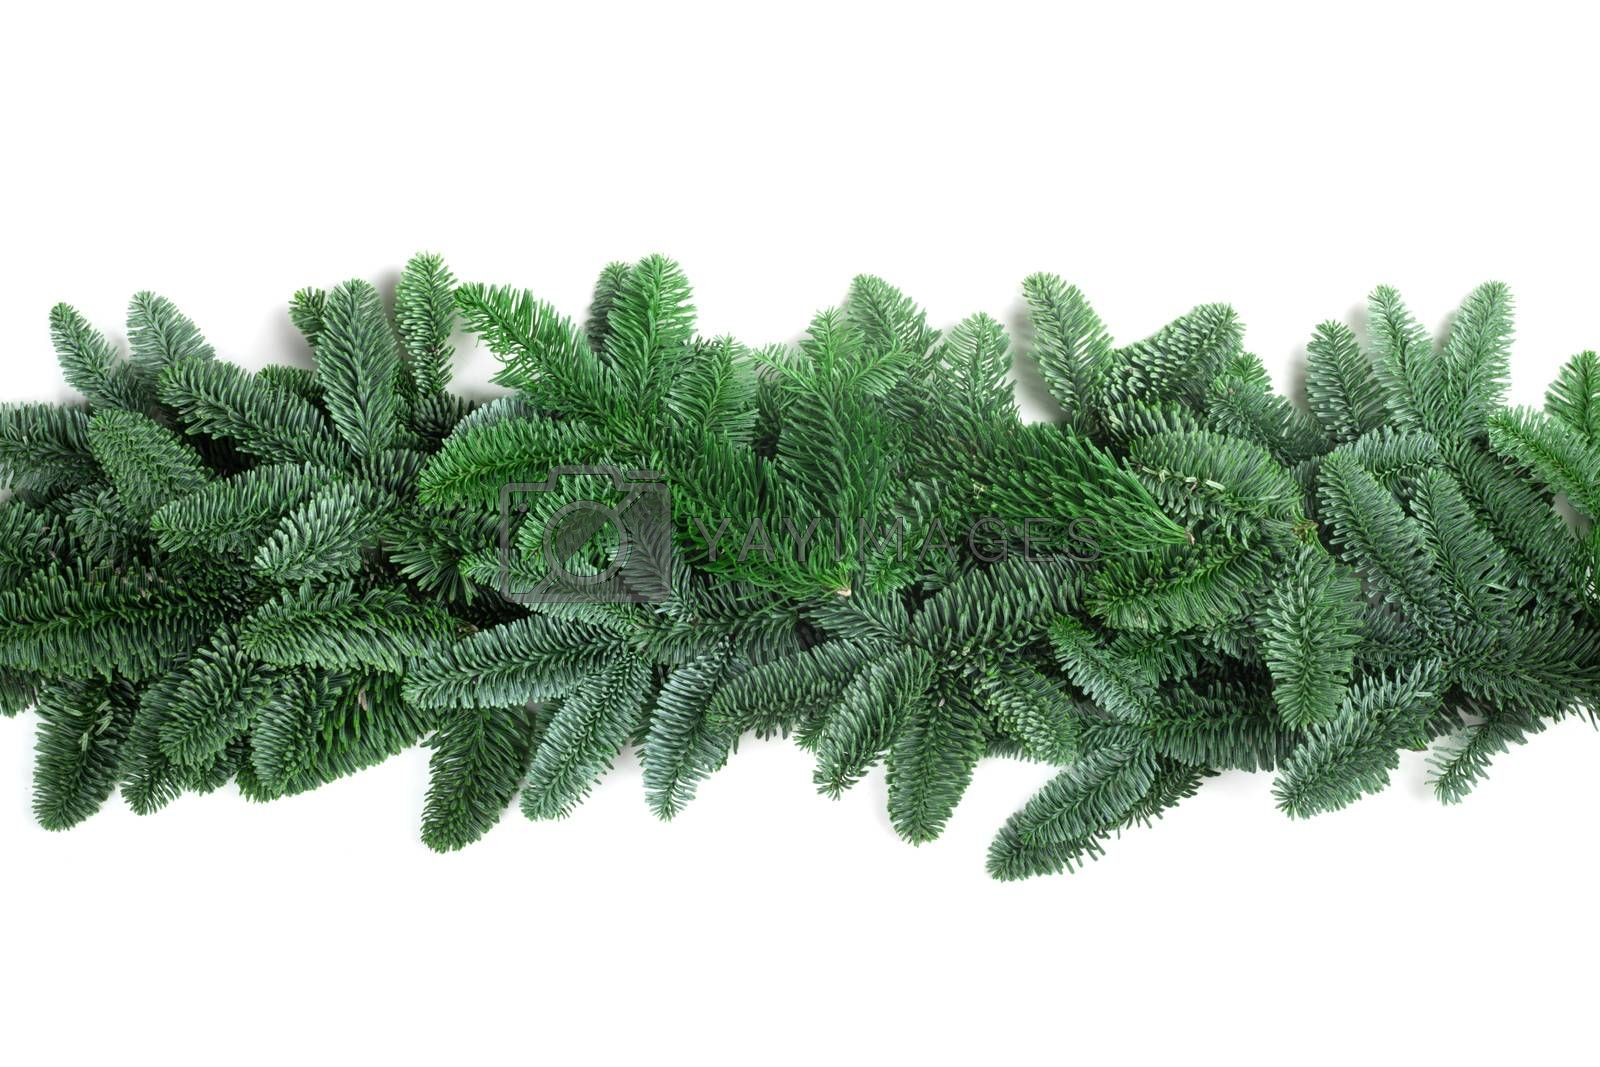 Christmas Border frame of natural noble fir tree branches isolated on white background